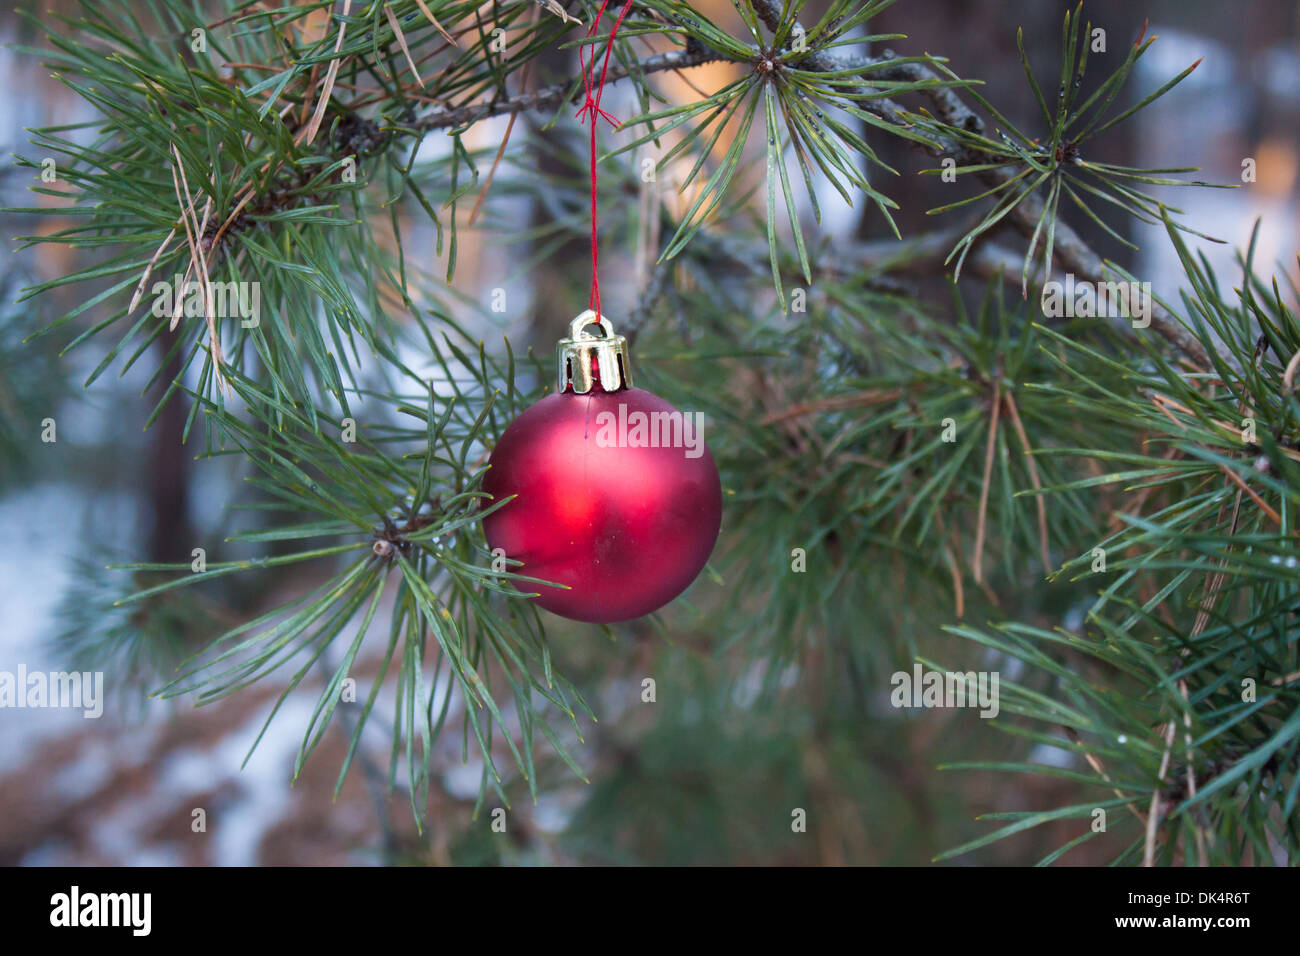 red Christmas ornament pine tree branch 'fir tree branch' red green - Stock Image